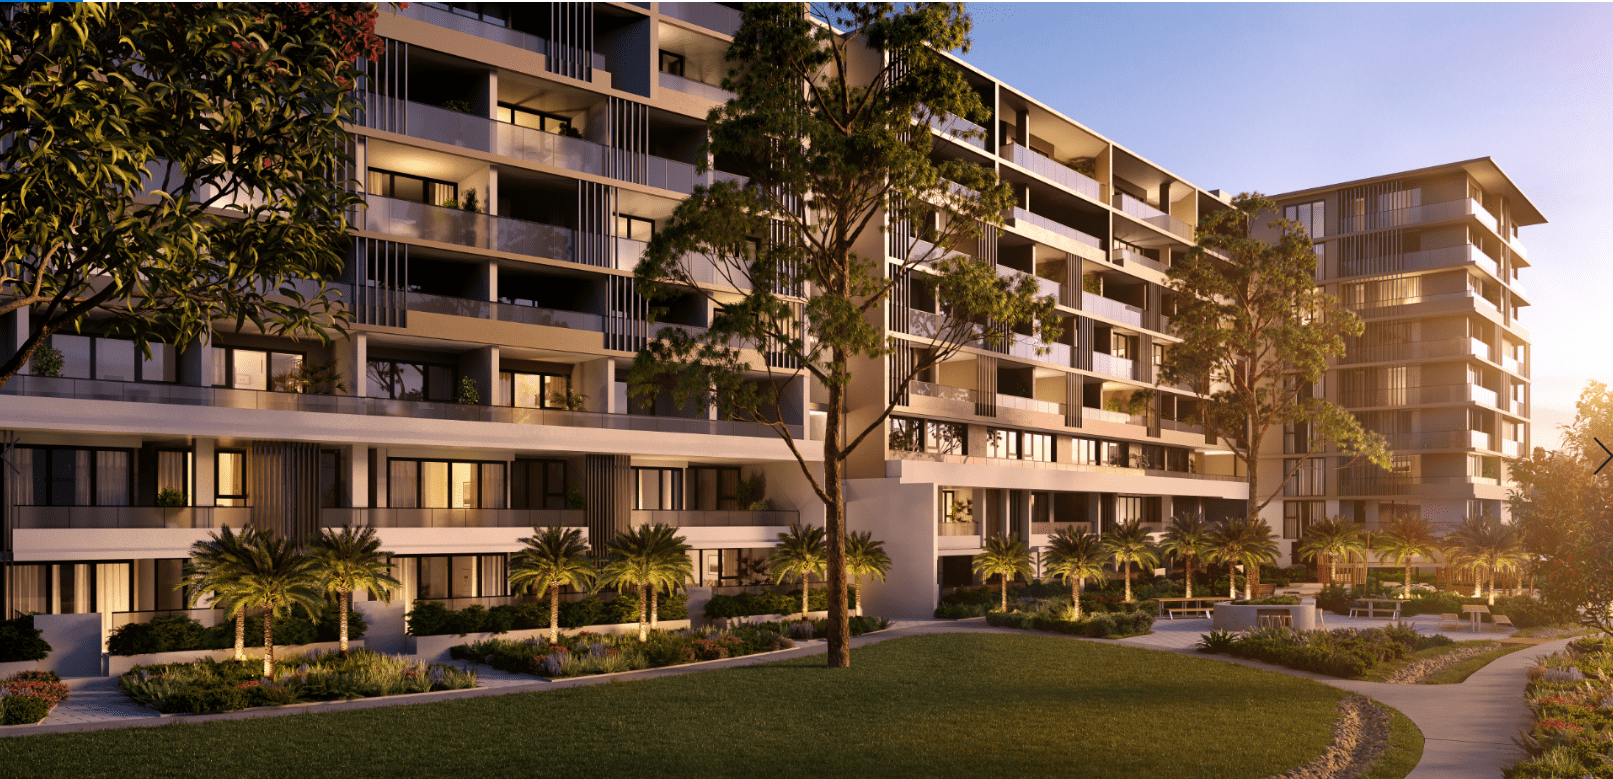 Residential Exterior Render - Apartments